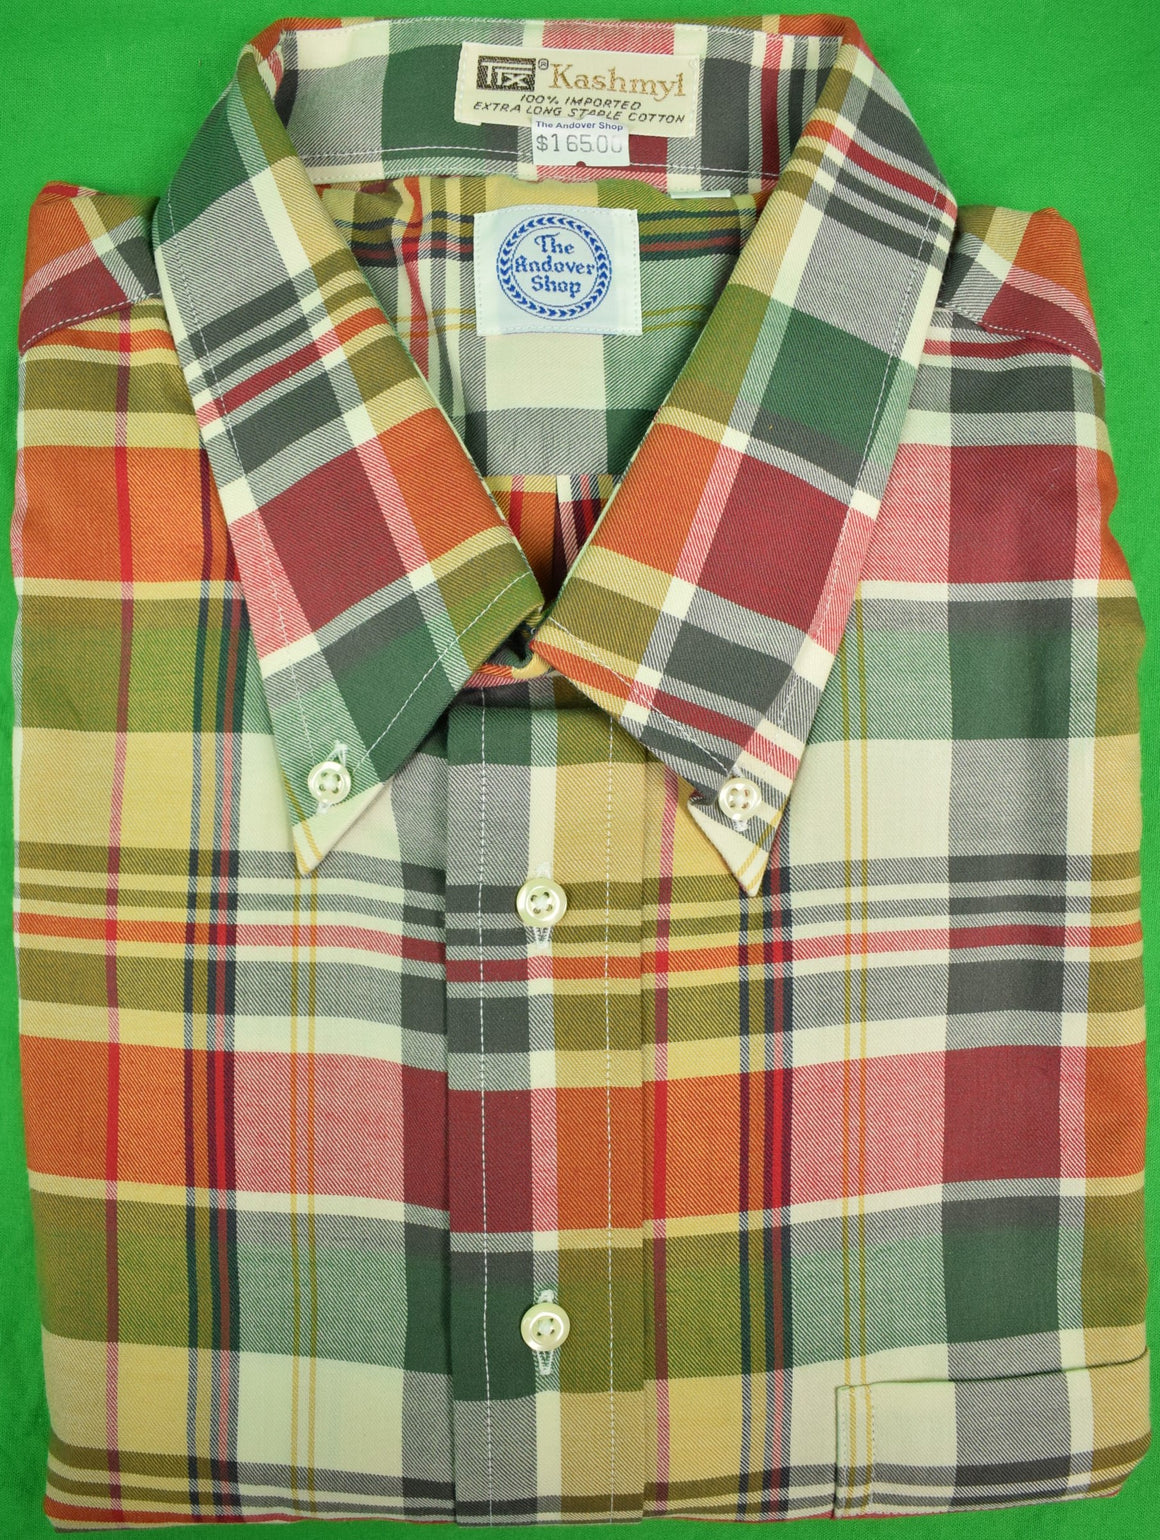 The Andover Shop TTX Kashmyl Brush Cutton BD Plaid Sport Shirt Sz: XL New w/ Tag!